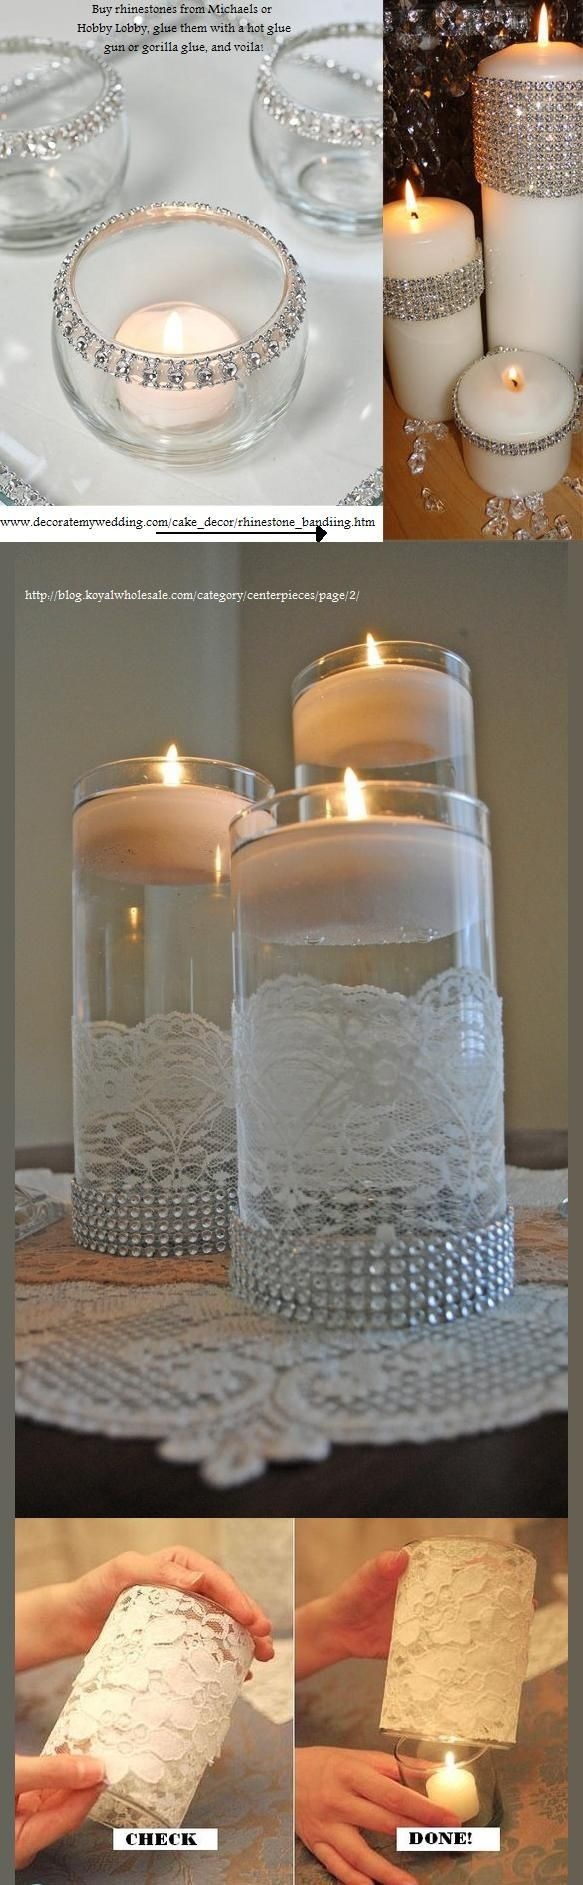 Michaels Glass Cylinder Vase Of 1572 Best Bicchieri Decorati Images On Pinterest Decorated Bottles Pertaining to Candles Vase Lace Diamond Rhinestone Ribbon From wholesale I Like the Lace but Not the Rhinestones at the Bottom